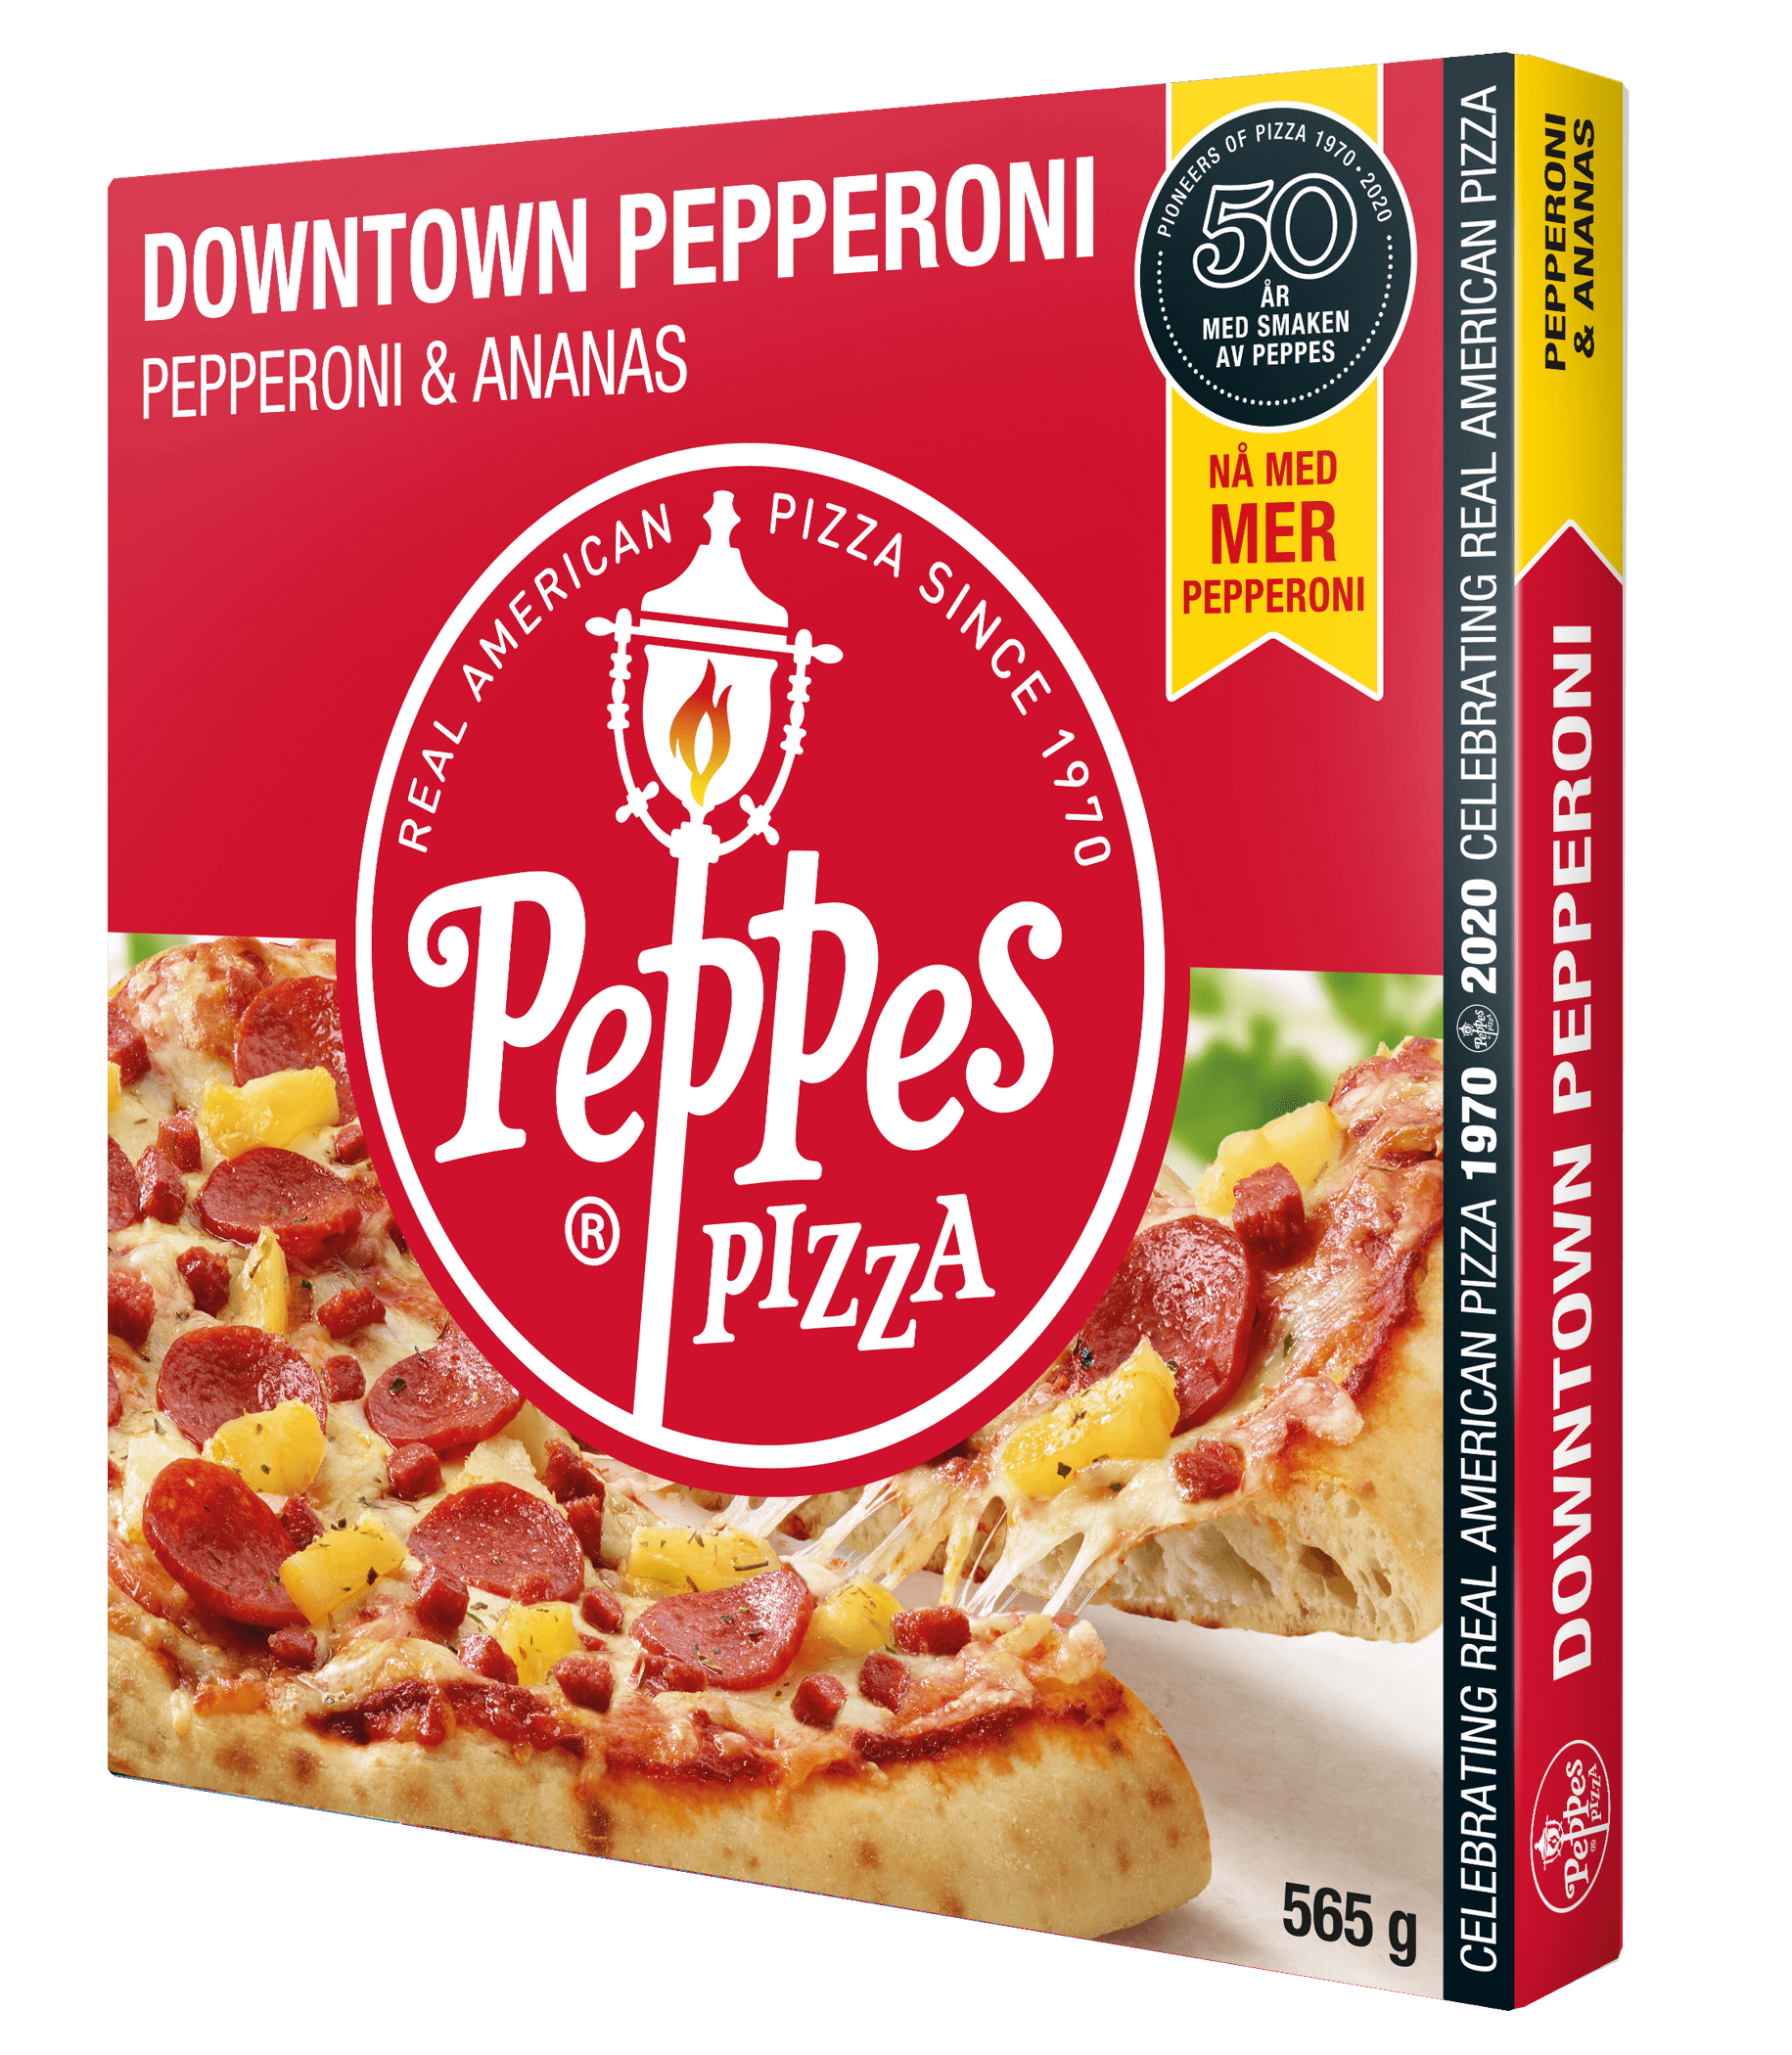 Peppes_50_Classic_Downtown_3D_mockup.png